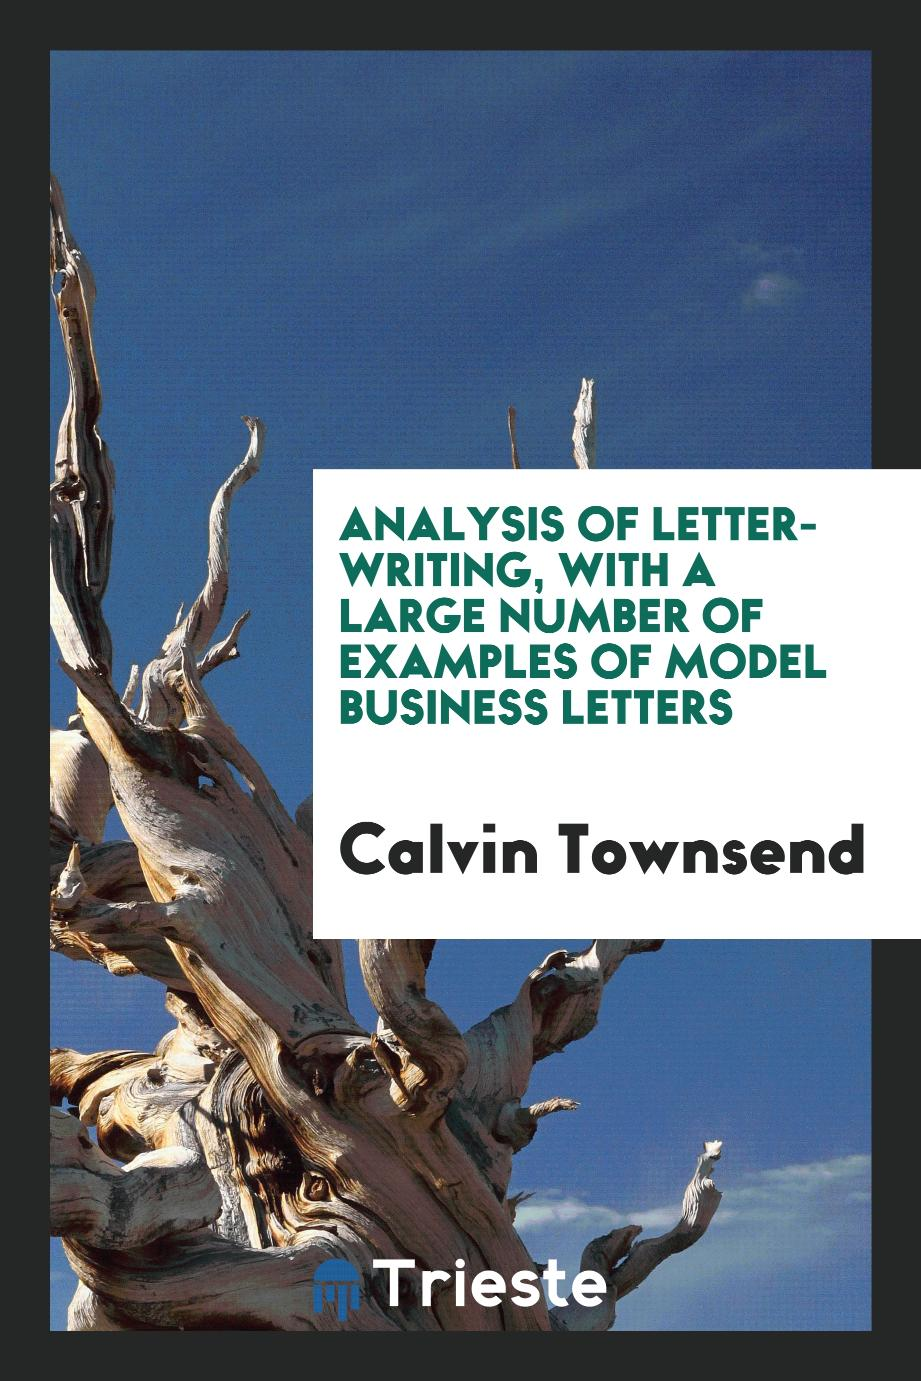 Analysis of Letter-writing, with a Large Number of Examples of Model Business Letters